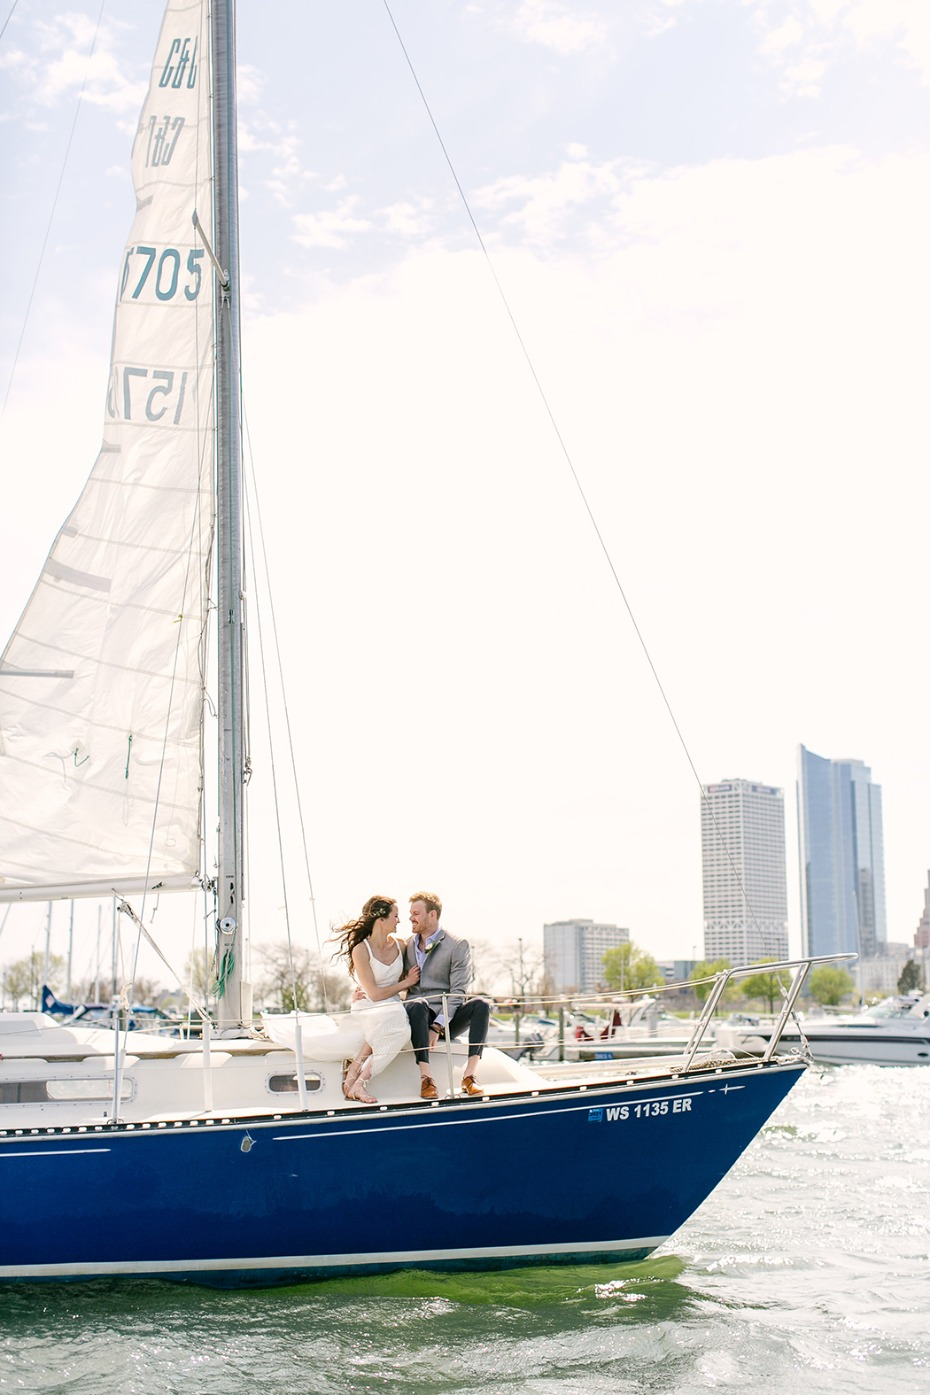 sail away on your wedding day